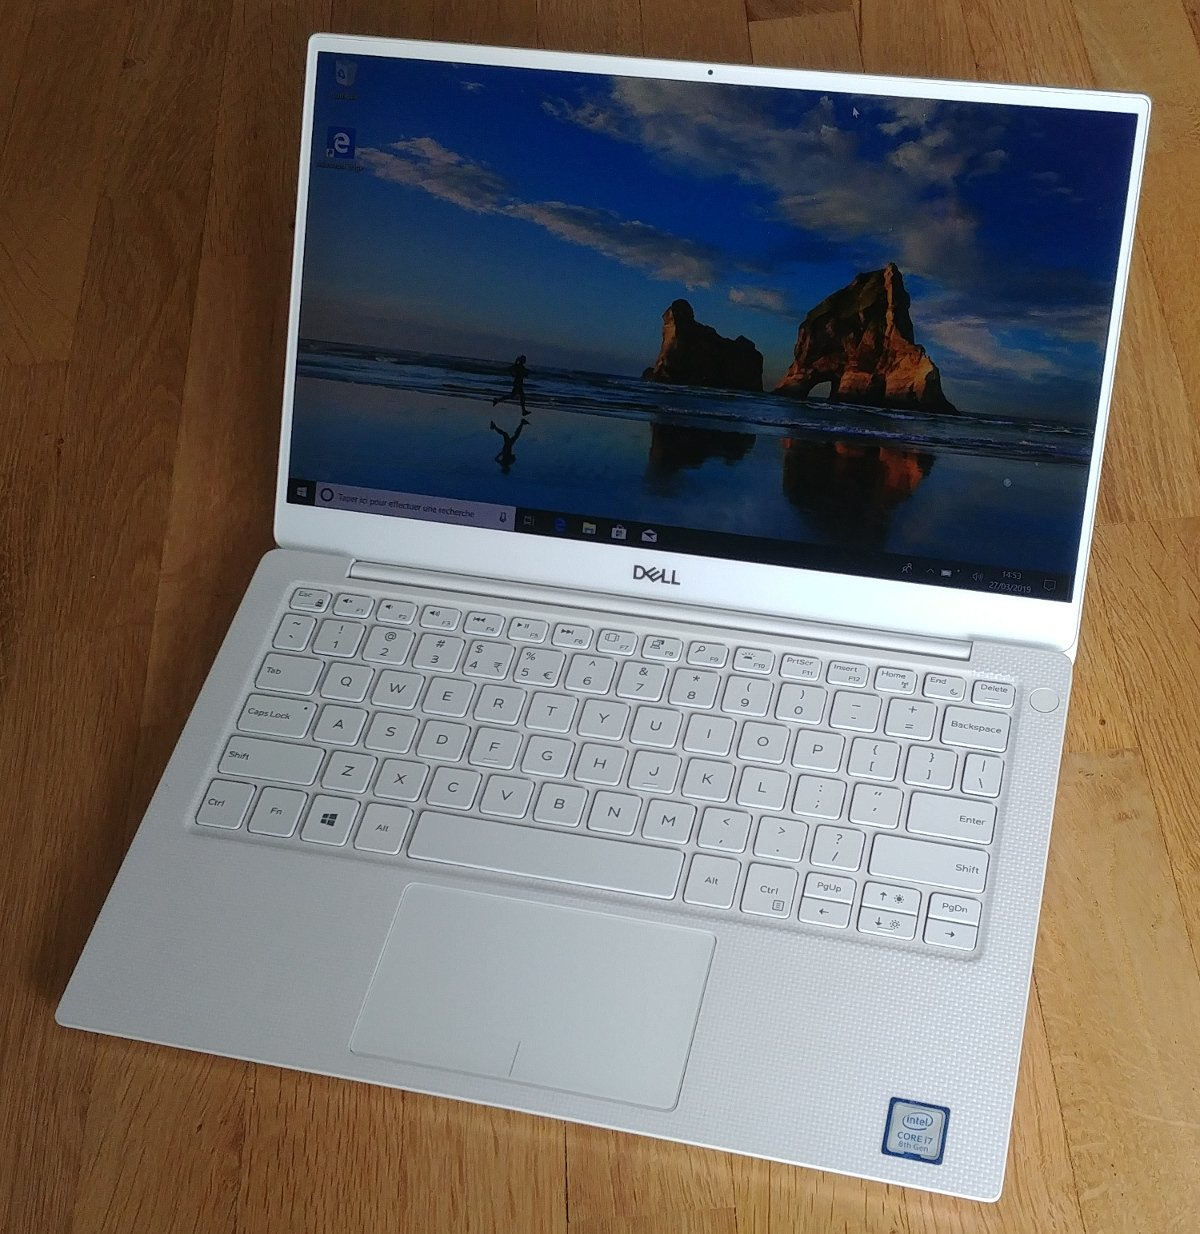 Image 1 : Test du Dell XPS 13 2019